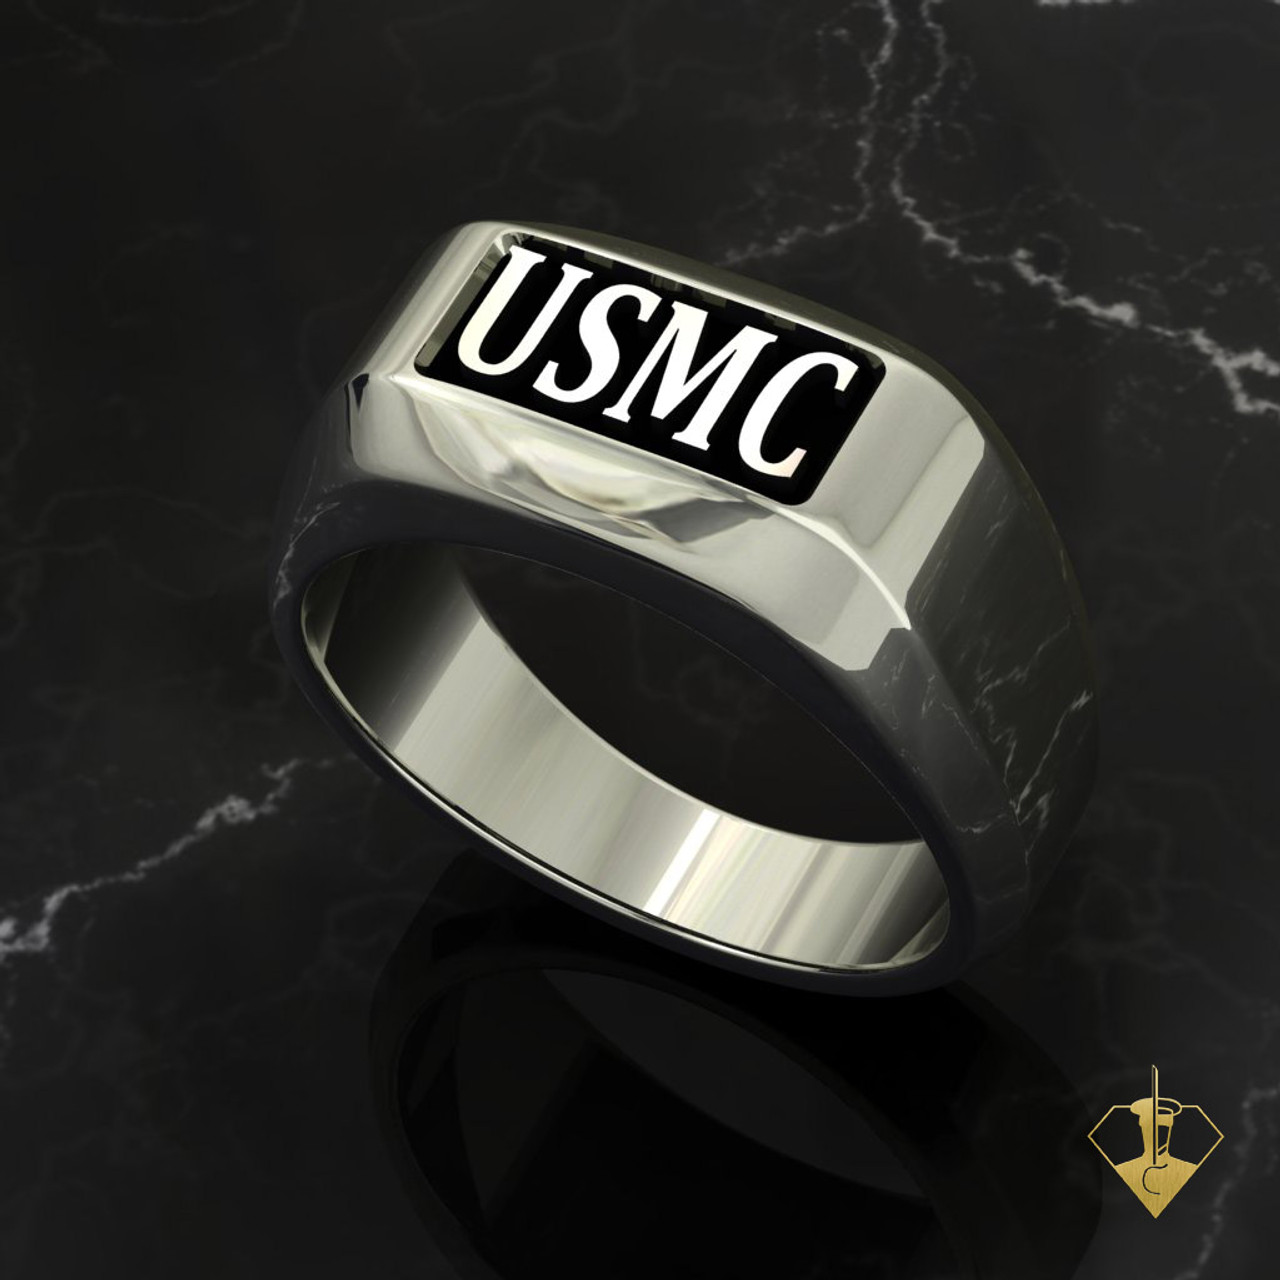 USMC Rugged Marine Ring  White Gold or Silver with Black Inlay